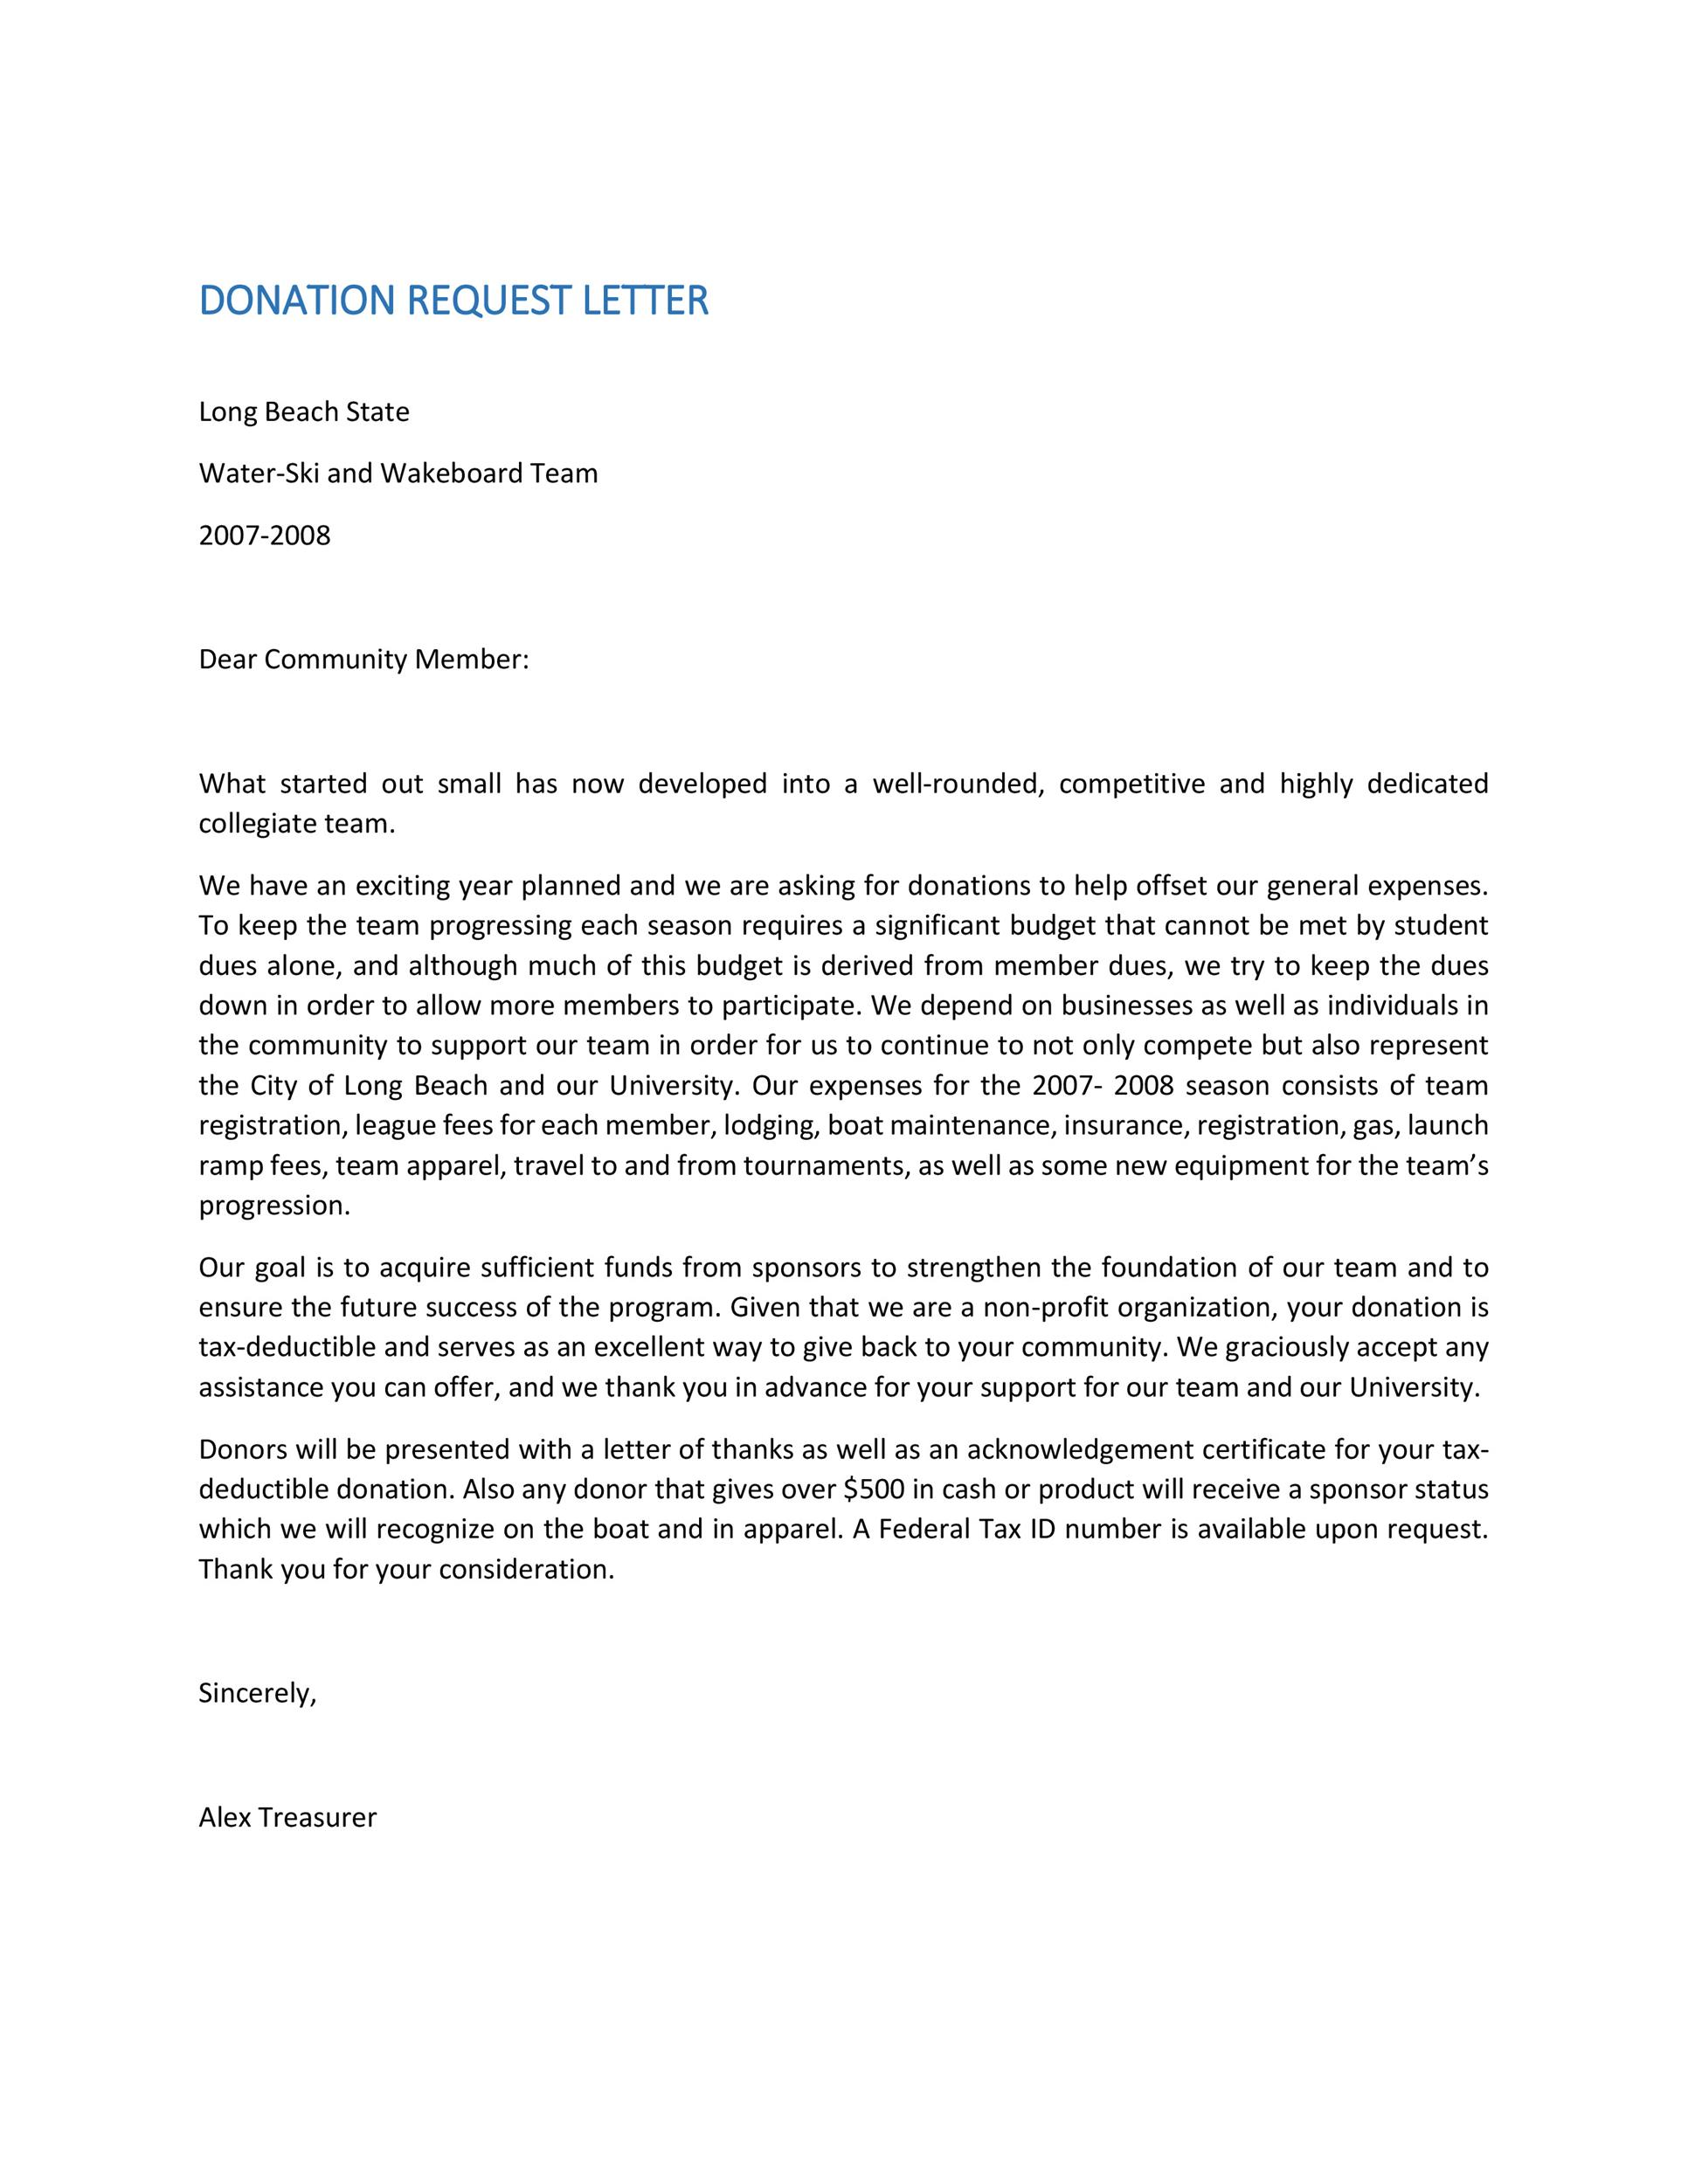 Donation Request Letter For Non Profit Organization  Docoments